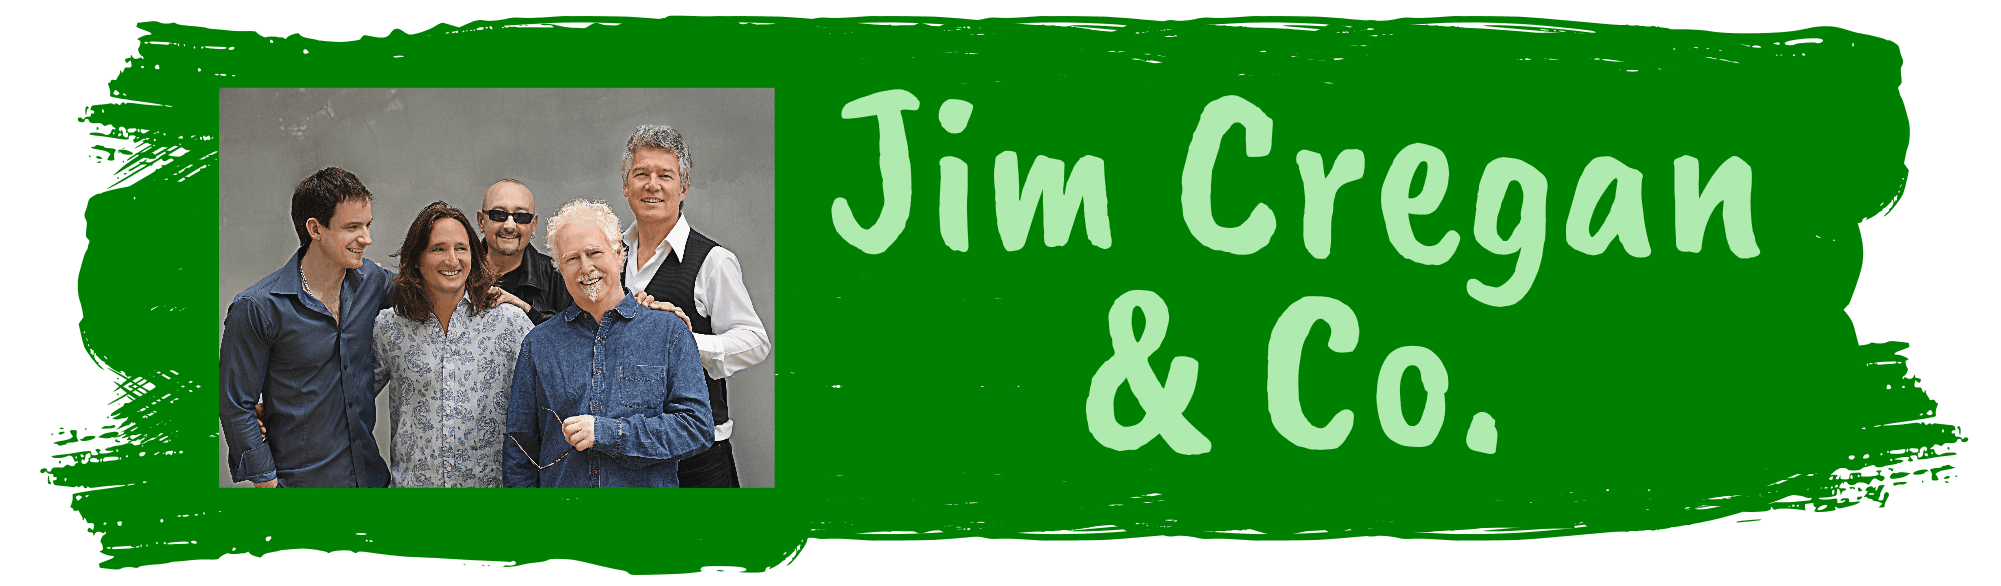 Jim Cregan & Co.